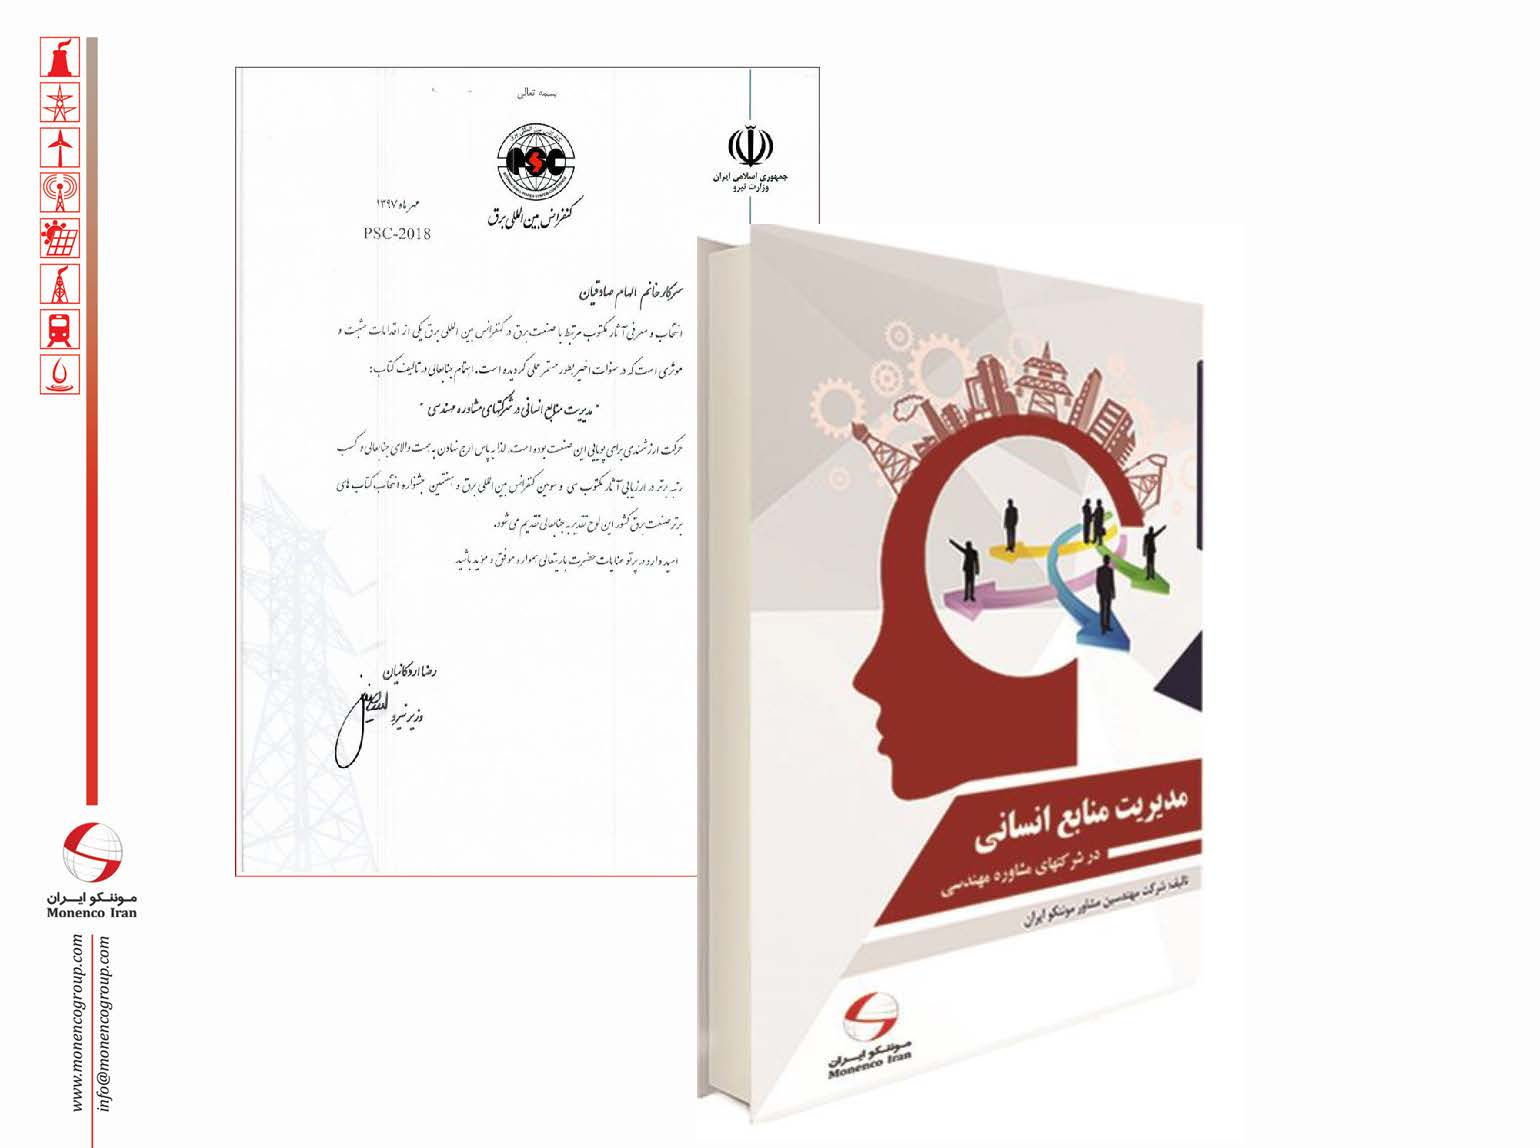 """Human Resources Management in Engineering Consultancy Companies"" Book published by Monenco Iran Consulting Engineers"